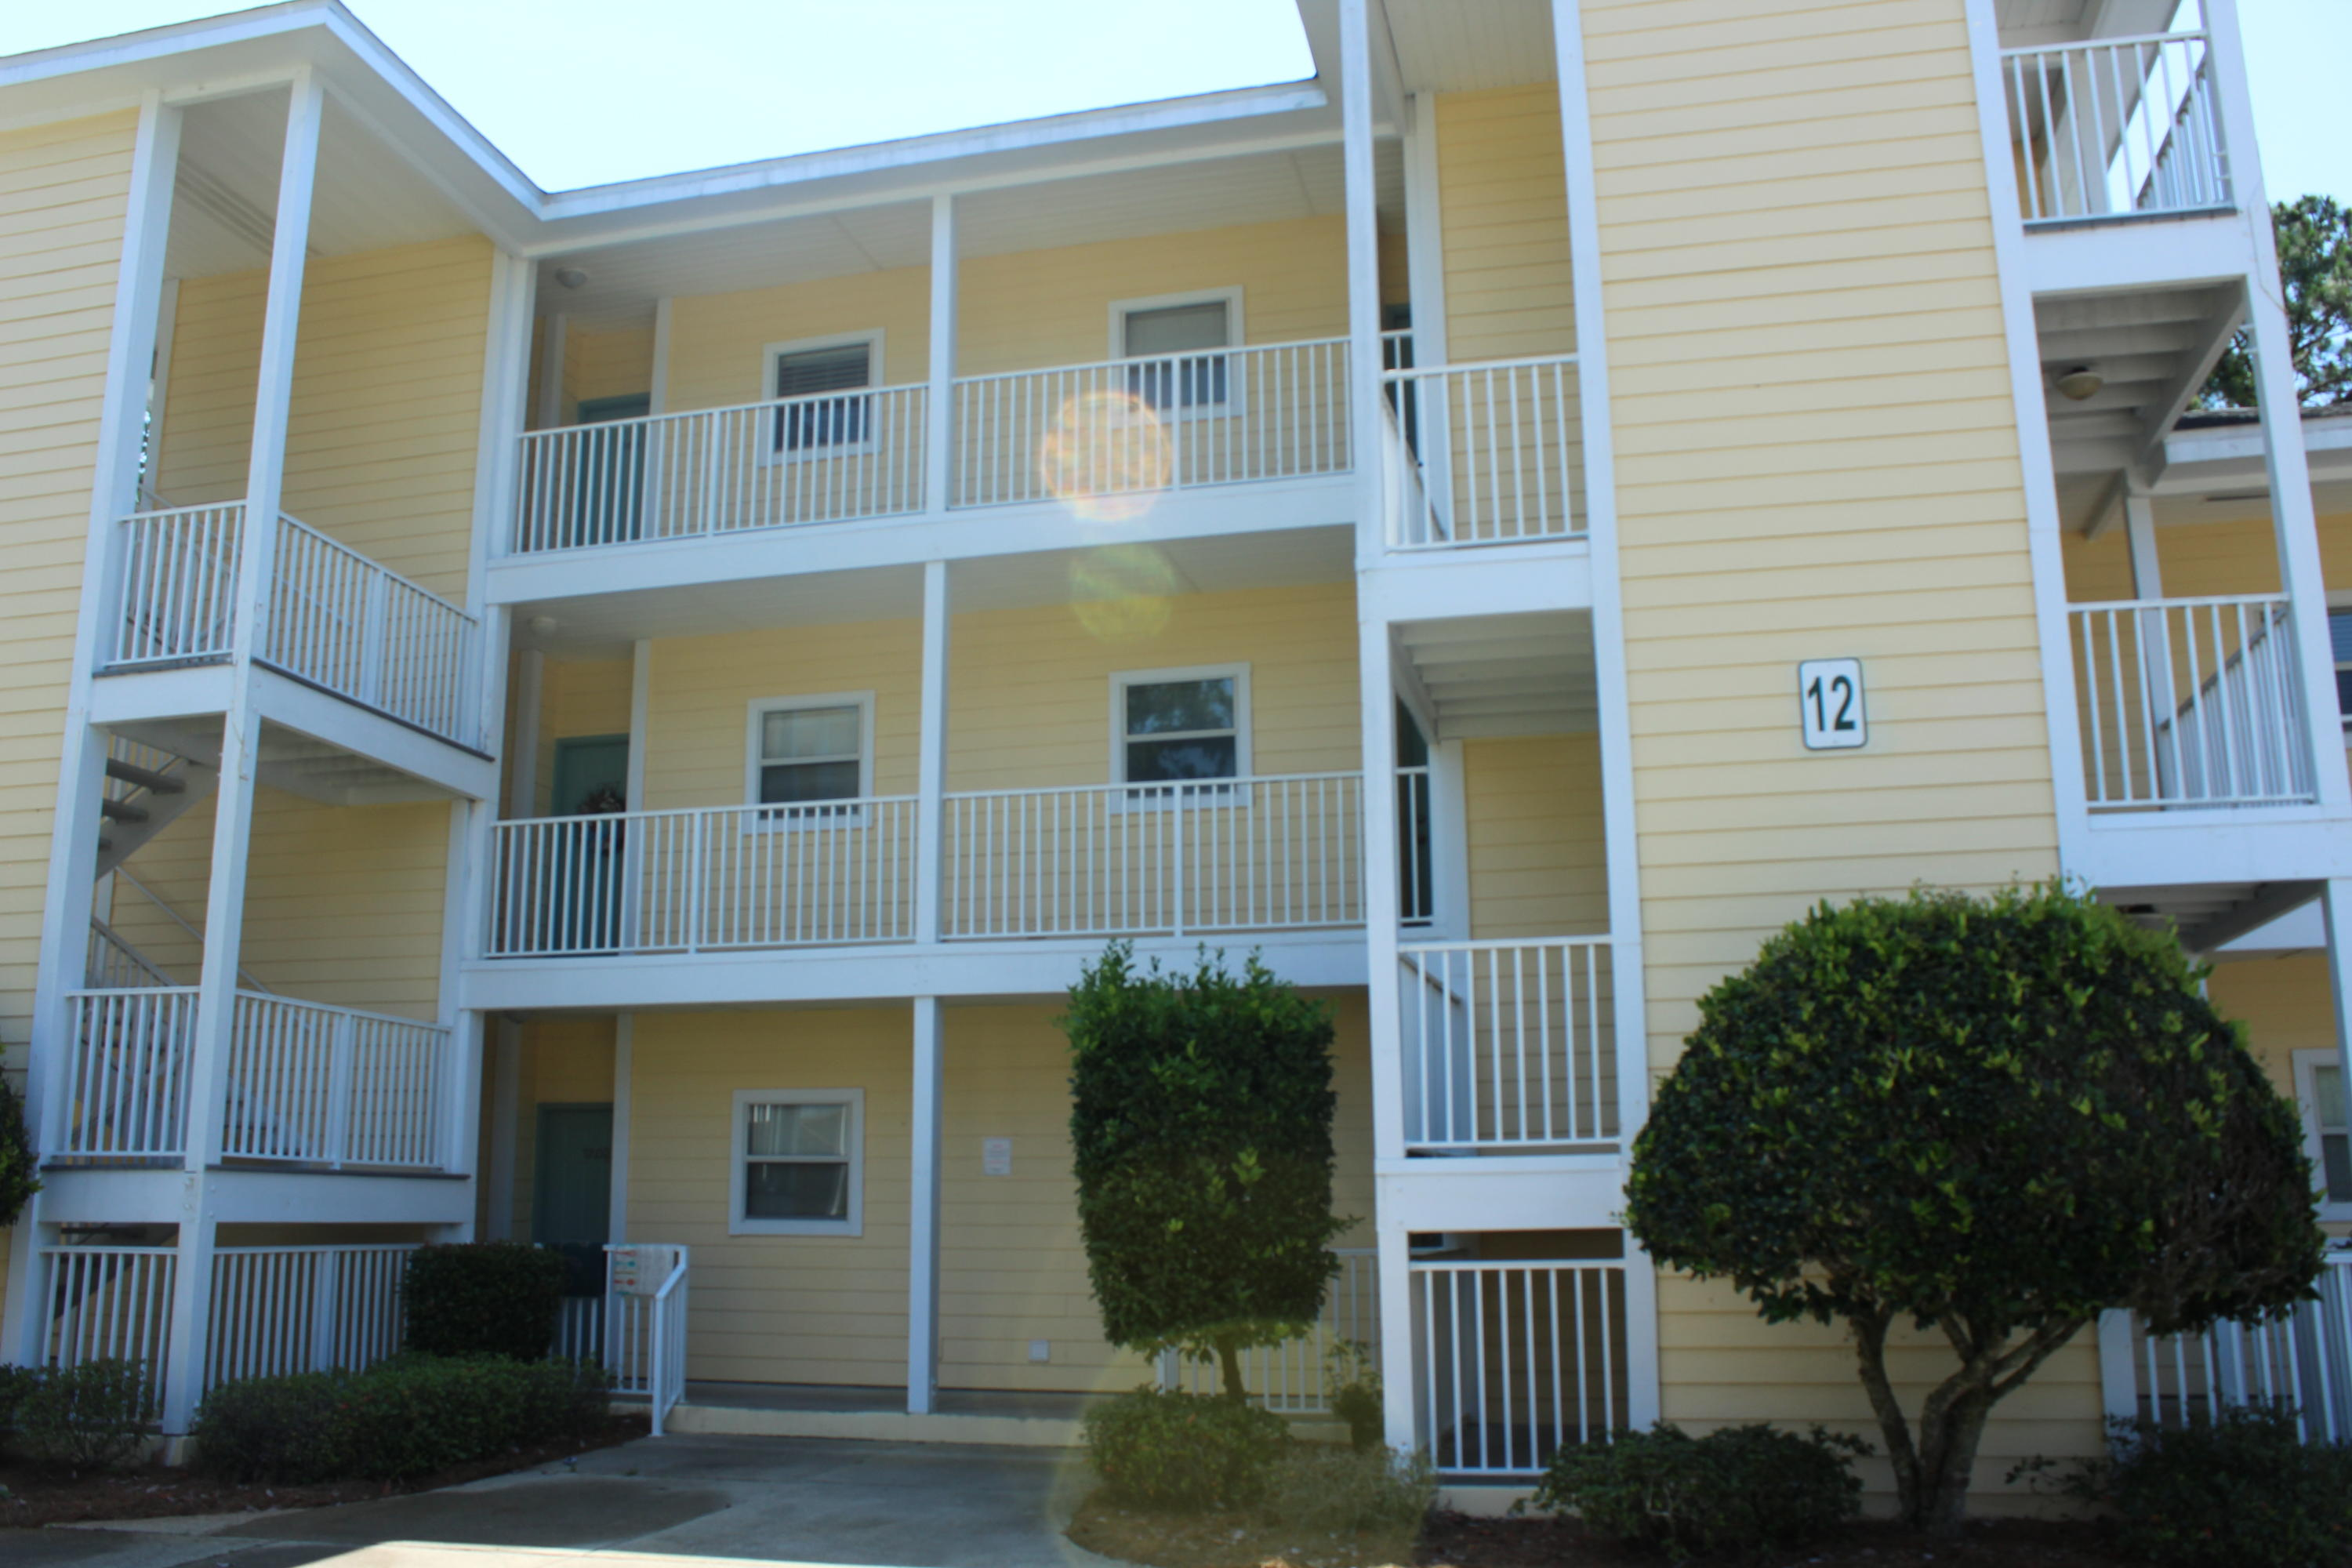 Location, Location! Make this sought after two bedroom two bathroom condo your personal home or vacation home today! Located close to the white sands and emerald coast beaches of Destin, Florida, shopping, dining, and more! This unit has a view from the master bedroom and living room of a wooded area, which provides maximum privacy. The pool is just behind that wooded area and only a short distance from the unit. Pointe of View community offers a beautiful swimming pool, exercise room, and is PET friendly. The two large bedrooms each offer their own en-suite bathroom. Kitchen has all stainless steel appliances. Large Laundry Room with plenty of storage room. All appliances convey with property. Buyer to verify all dimensions and information!